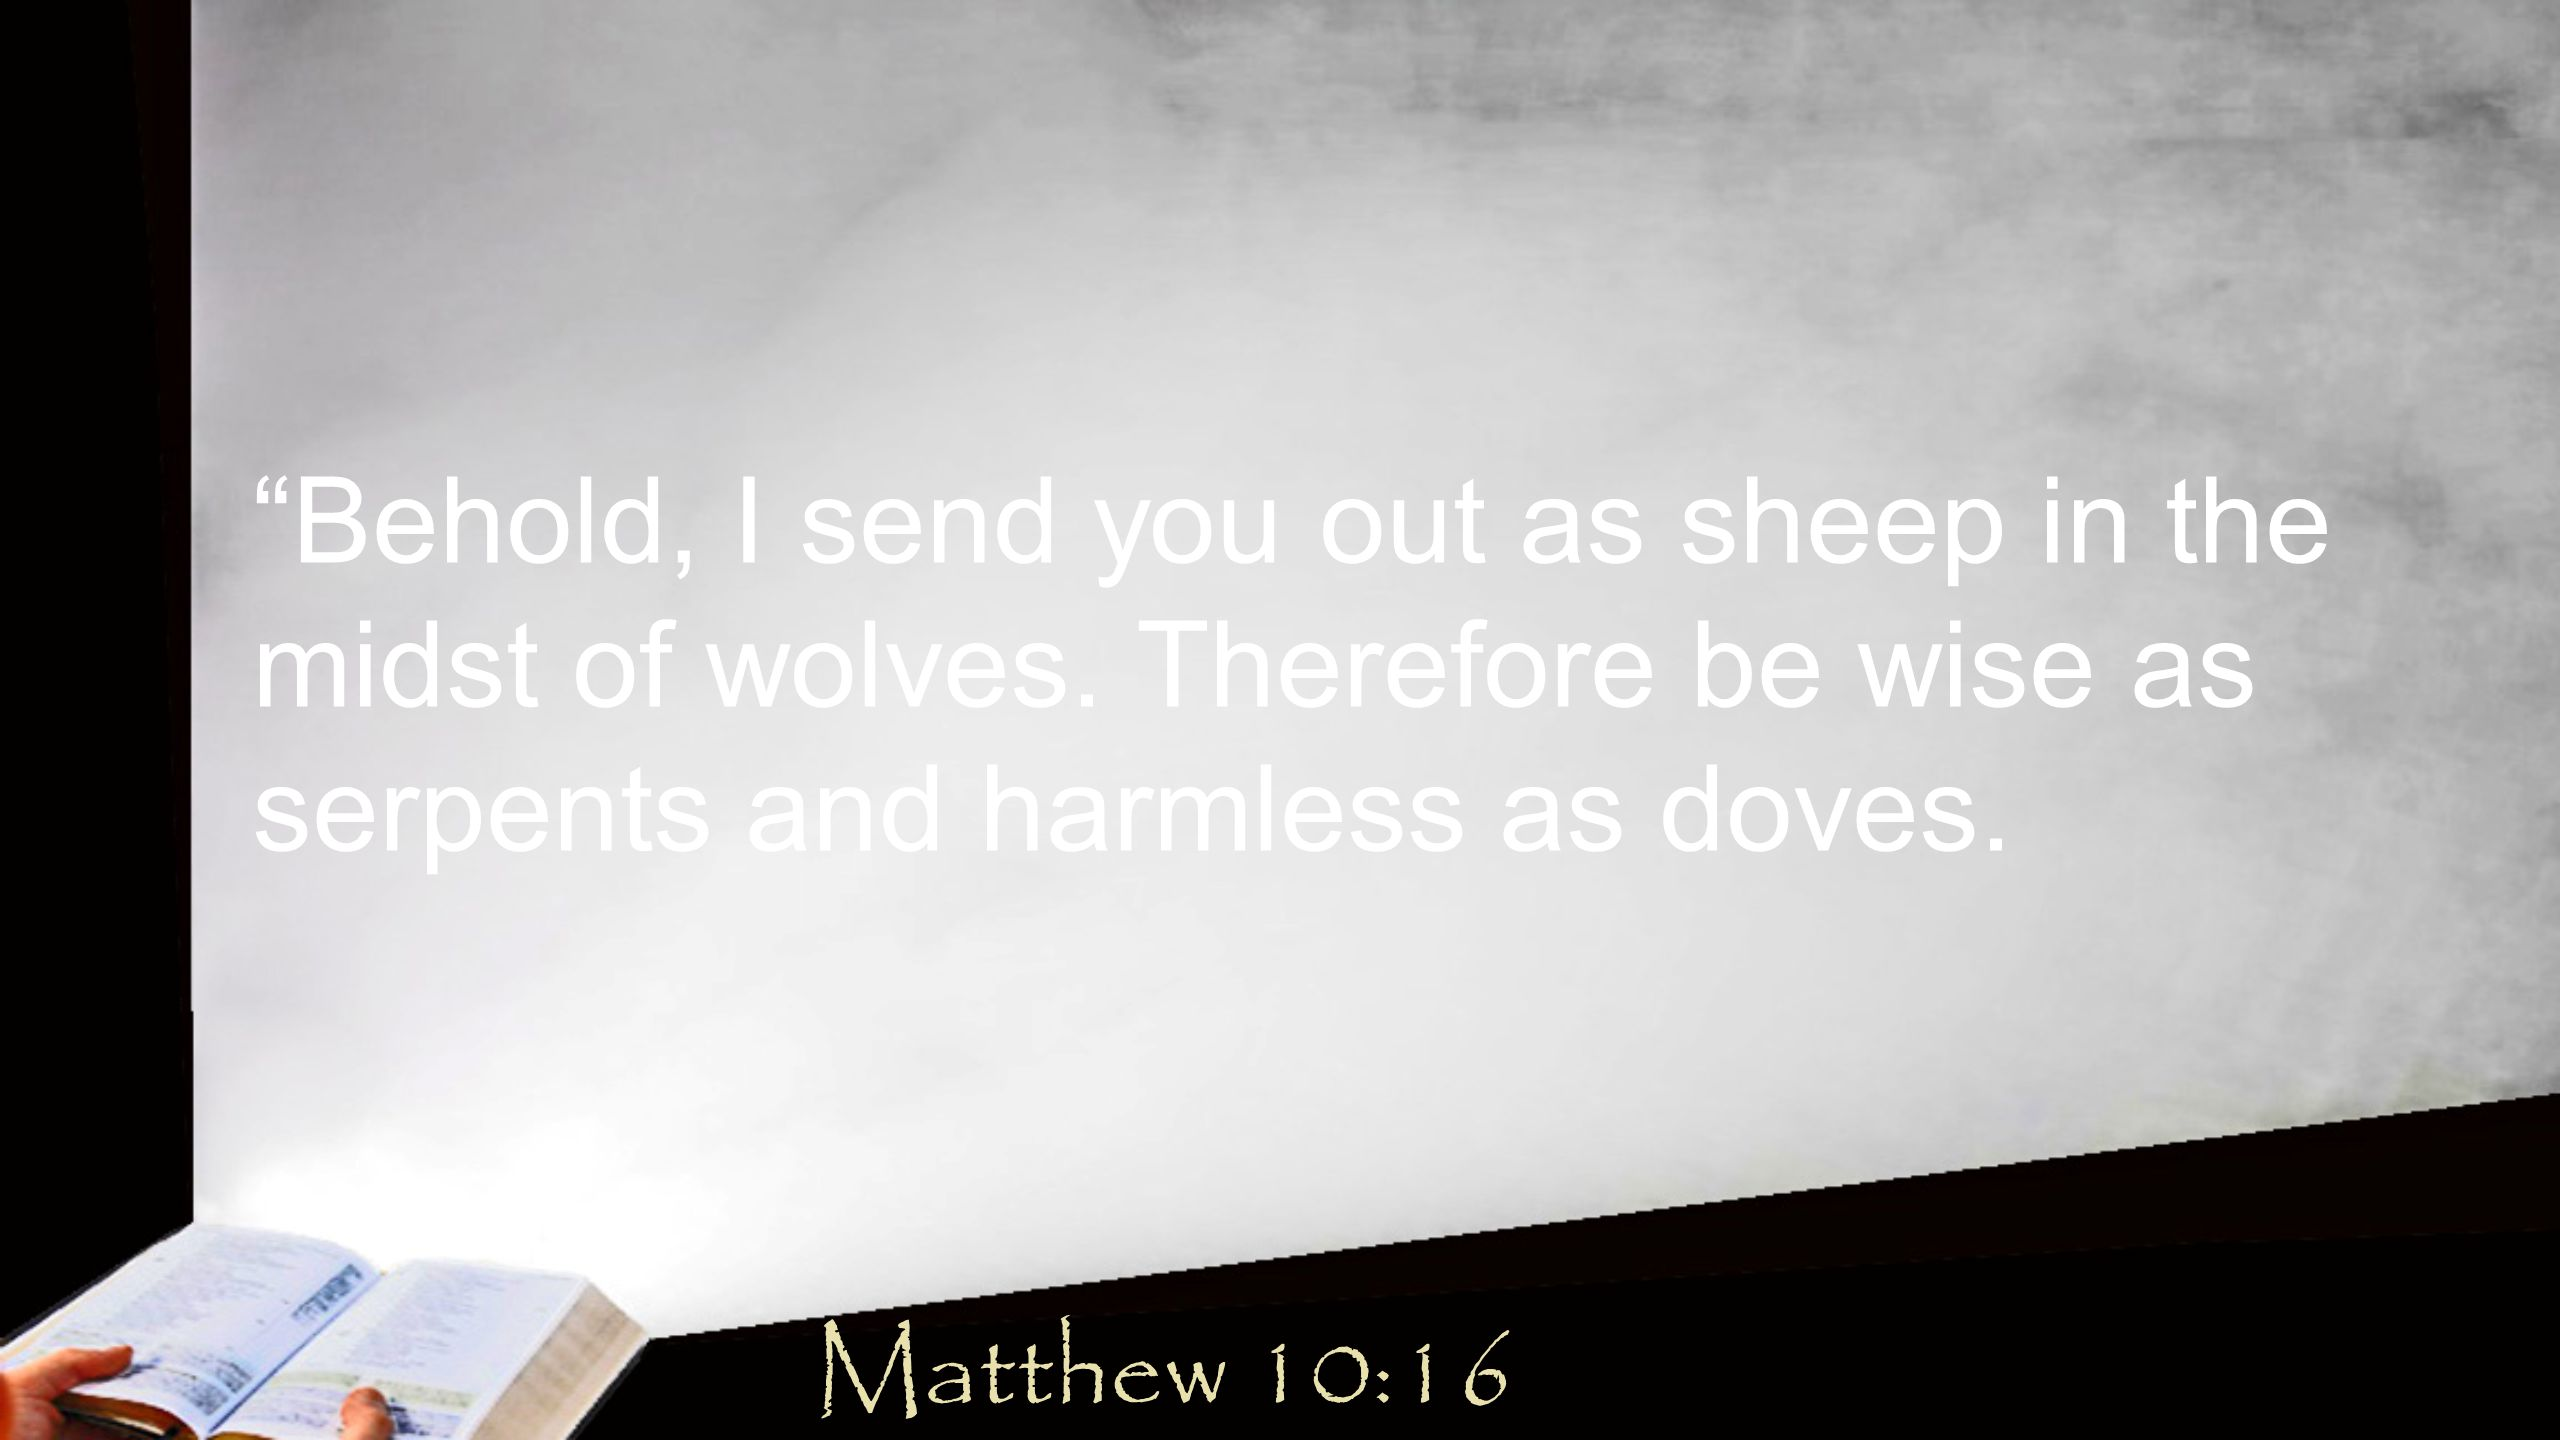 Behold, I send you out as sheep in the midst of wolves.